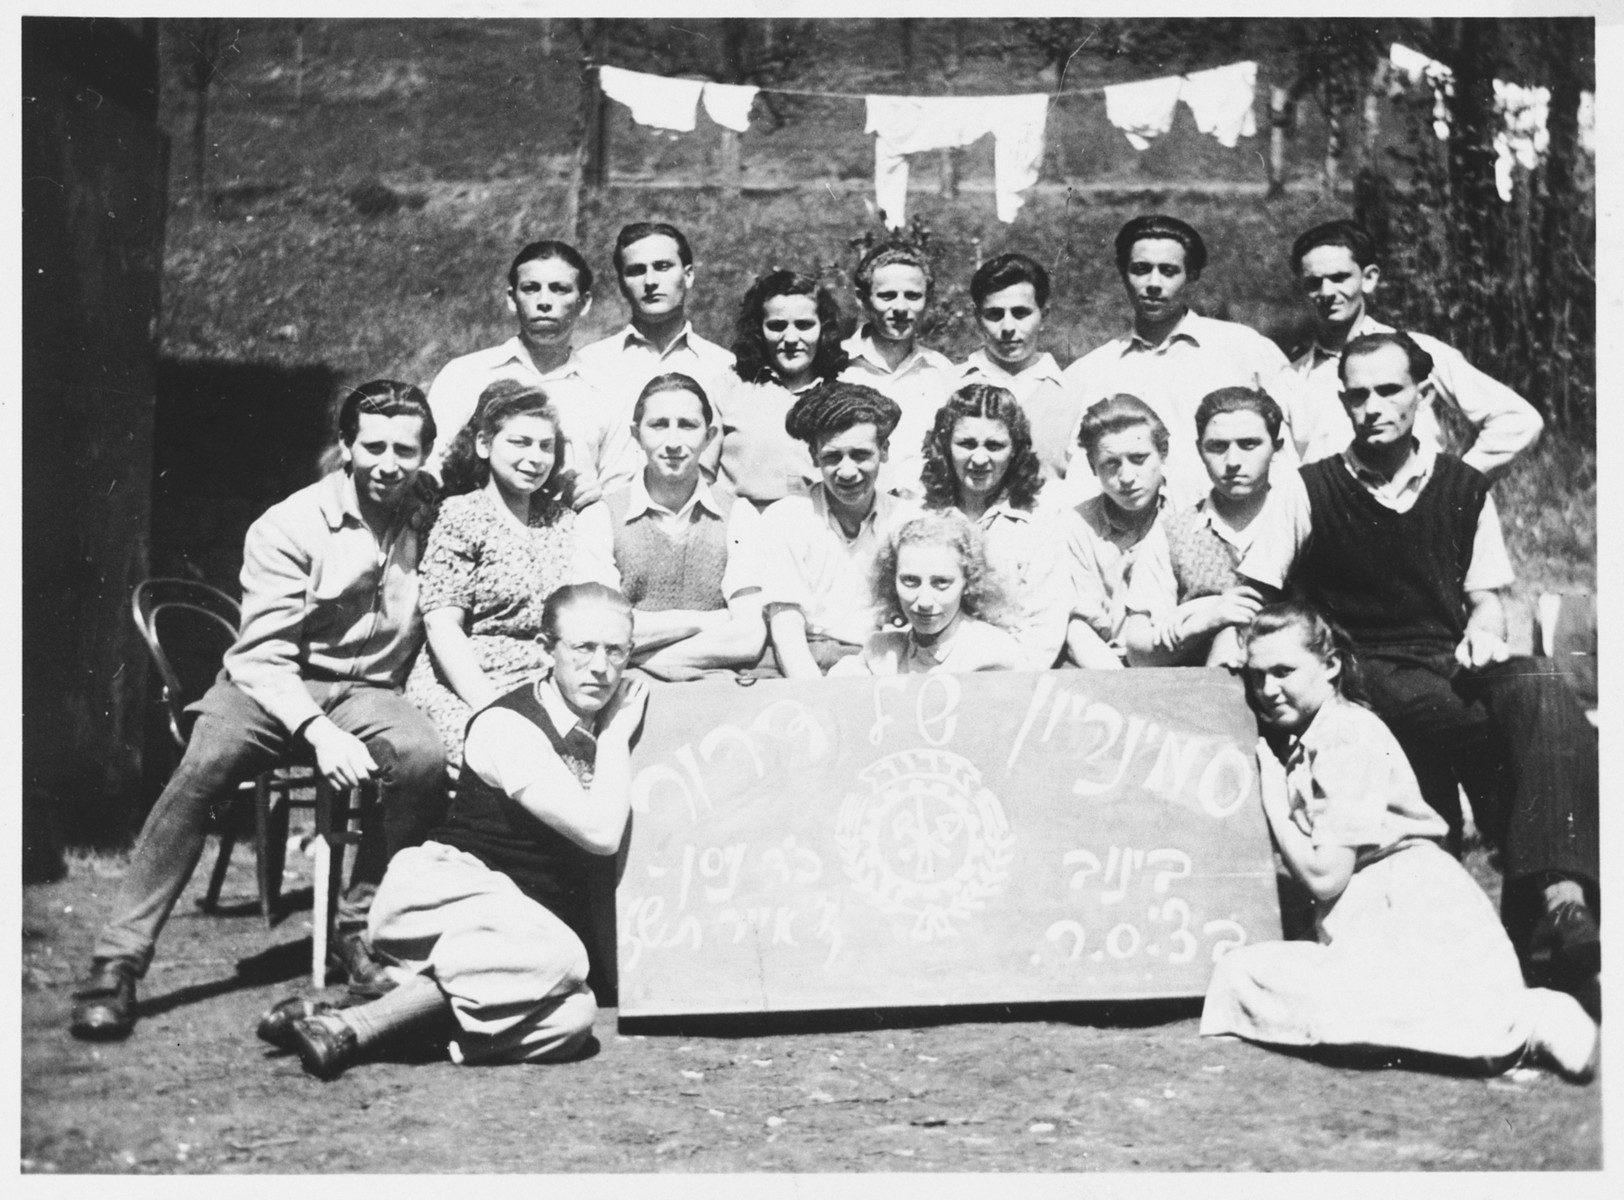 Group portrait of Jewish DP youth posing with a sign at a seminar of the Dror-Hehalutz Zionist youth movement in Czechoslovakia.